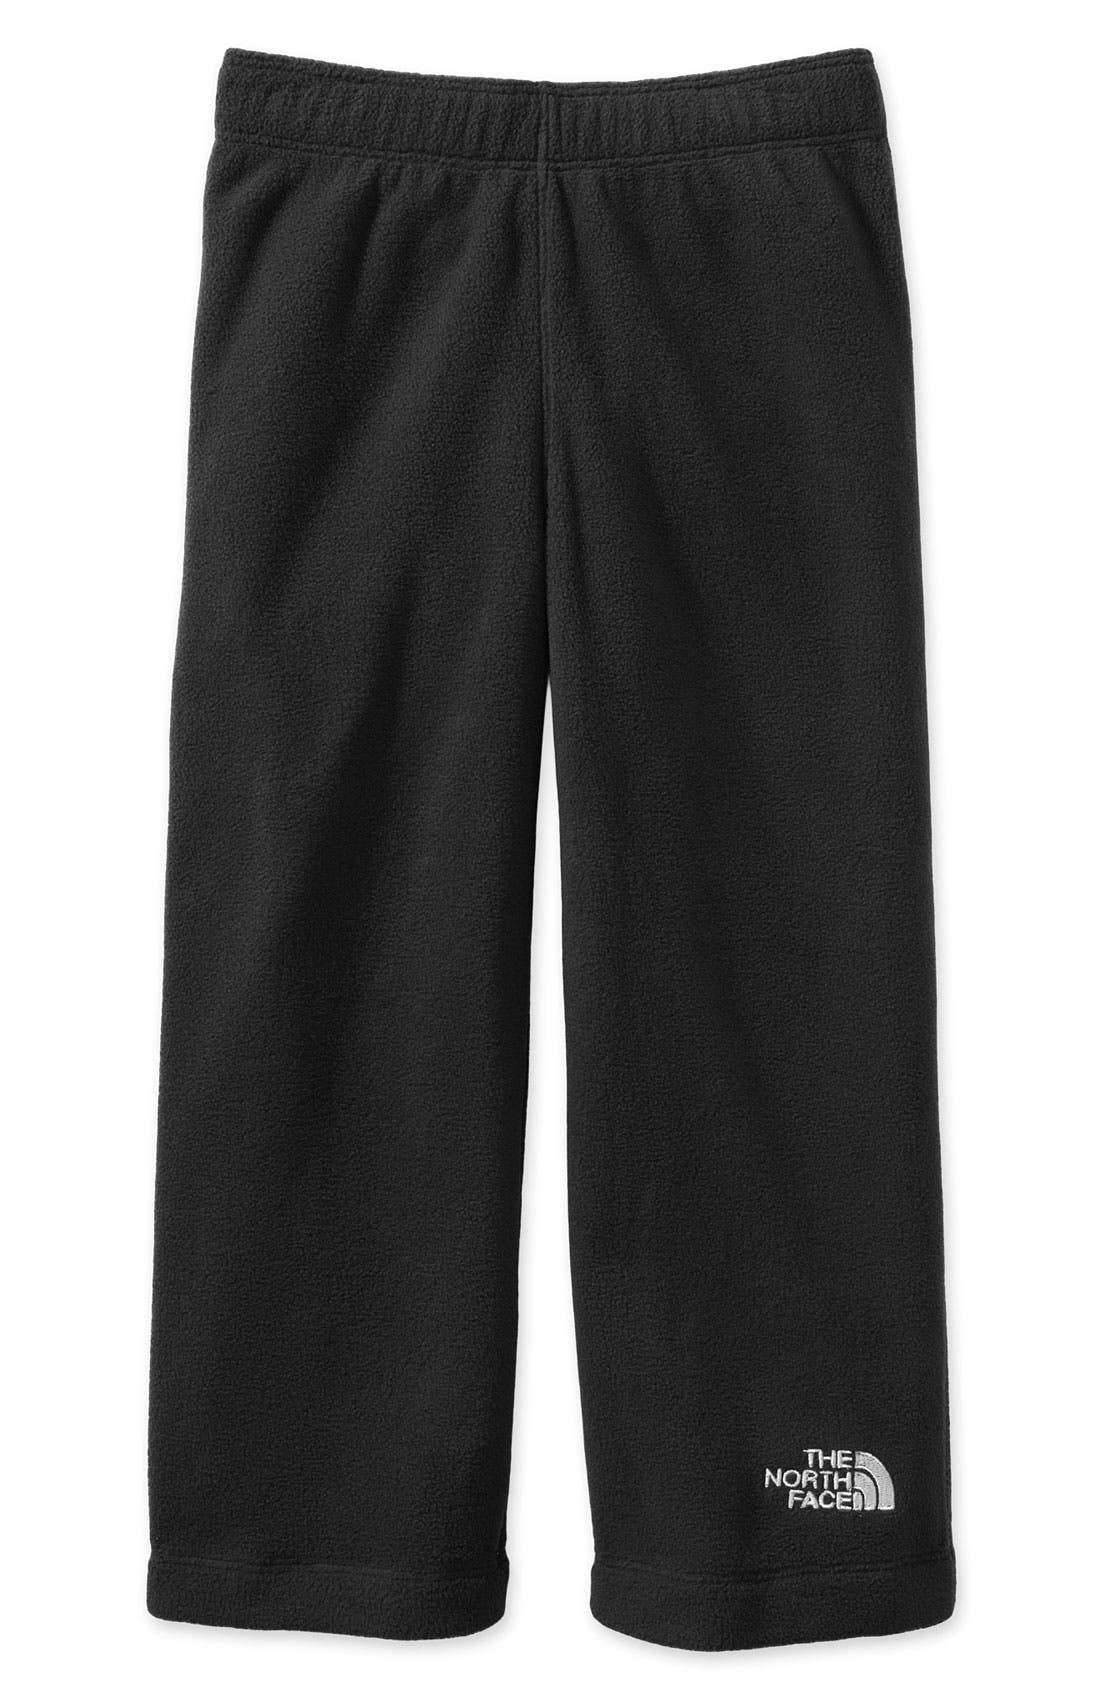 Alternate Image 1 Selected - The North Face 'Glacier' Fleece Pants (Toddler)